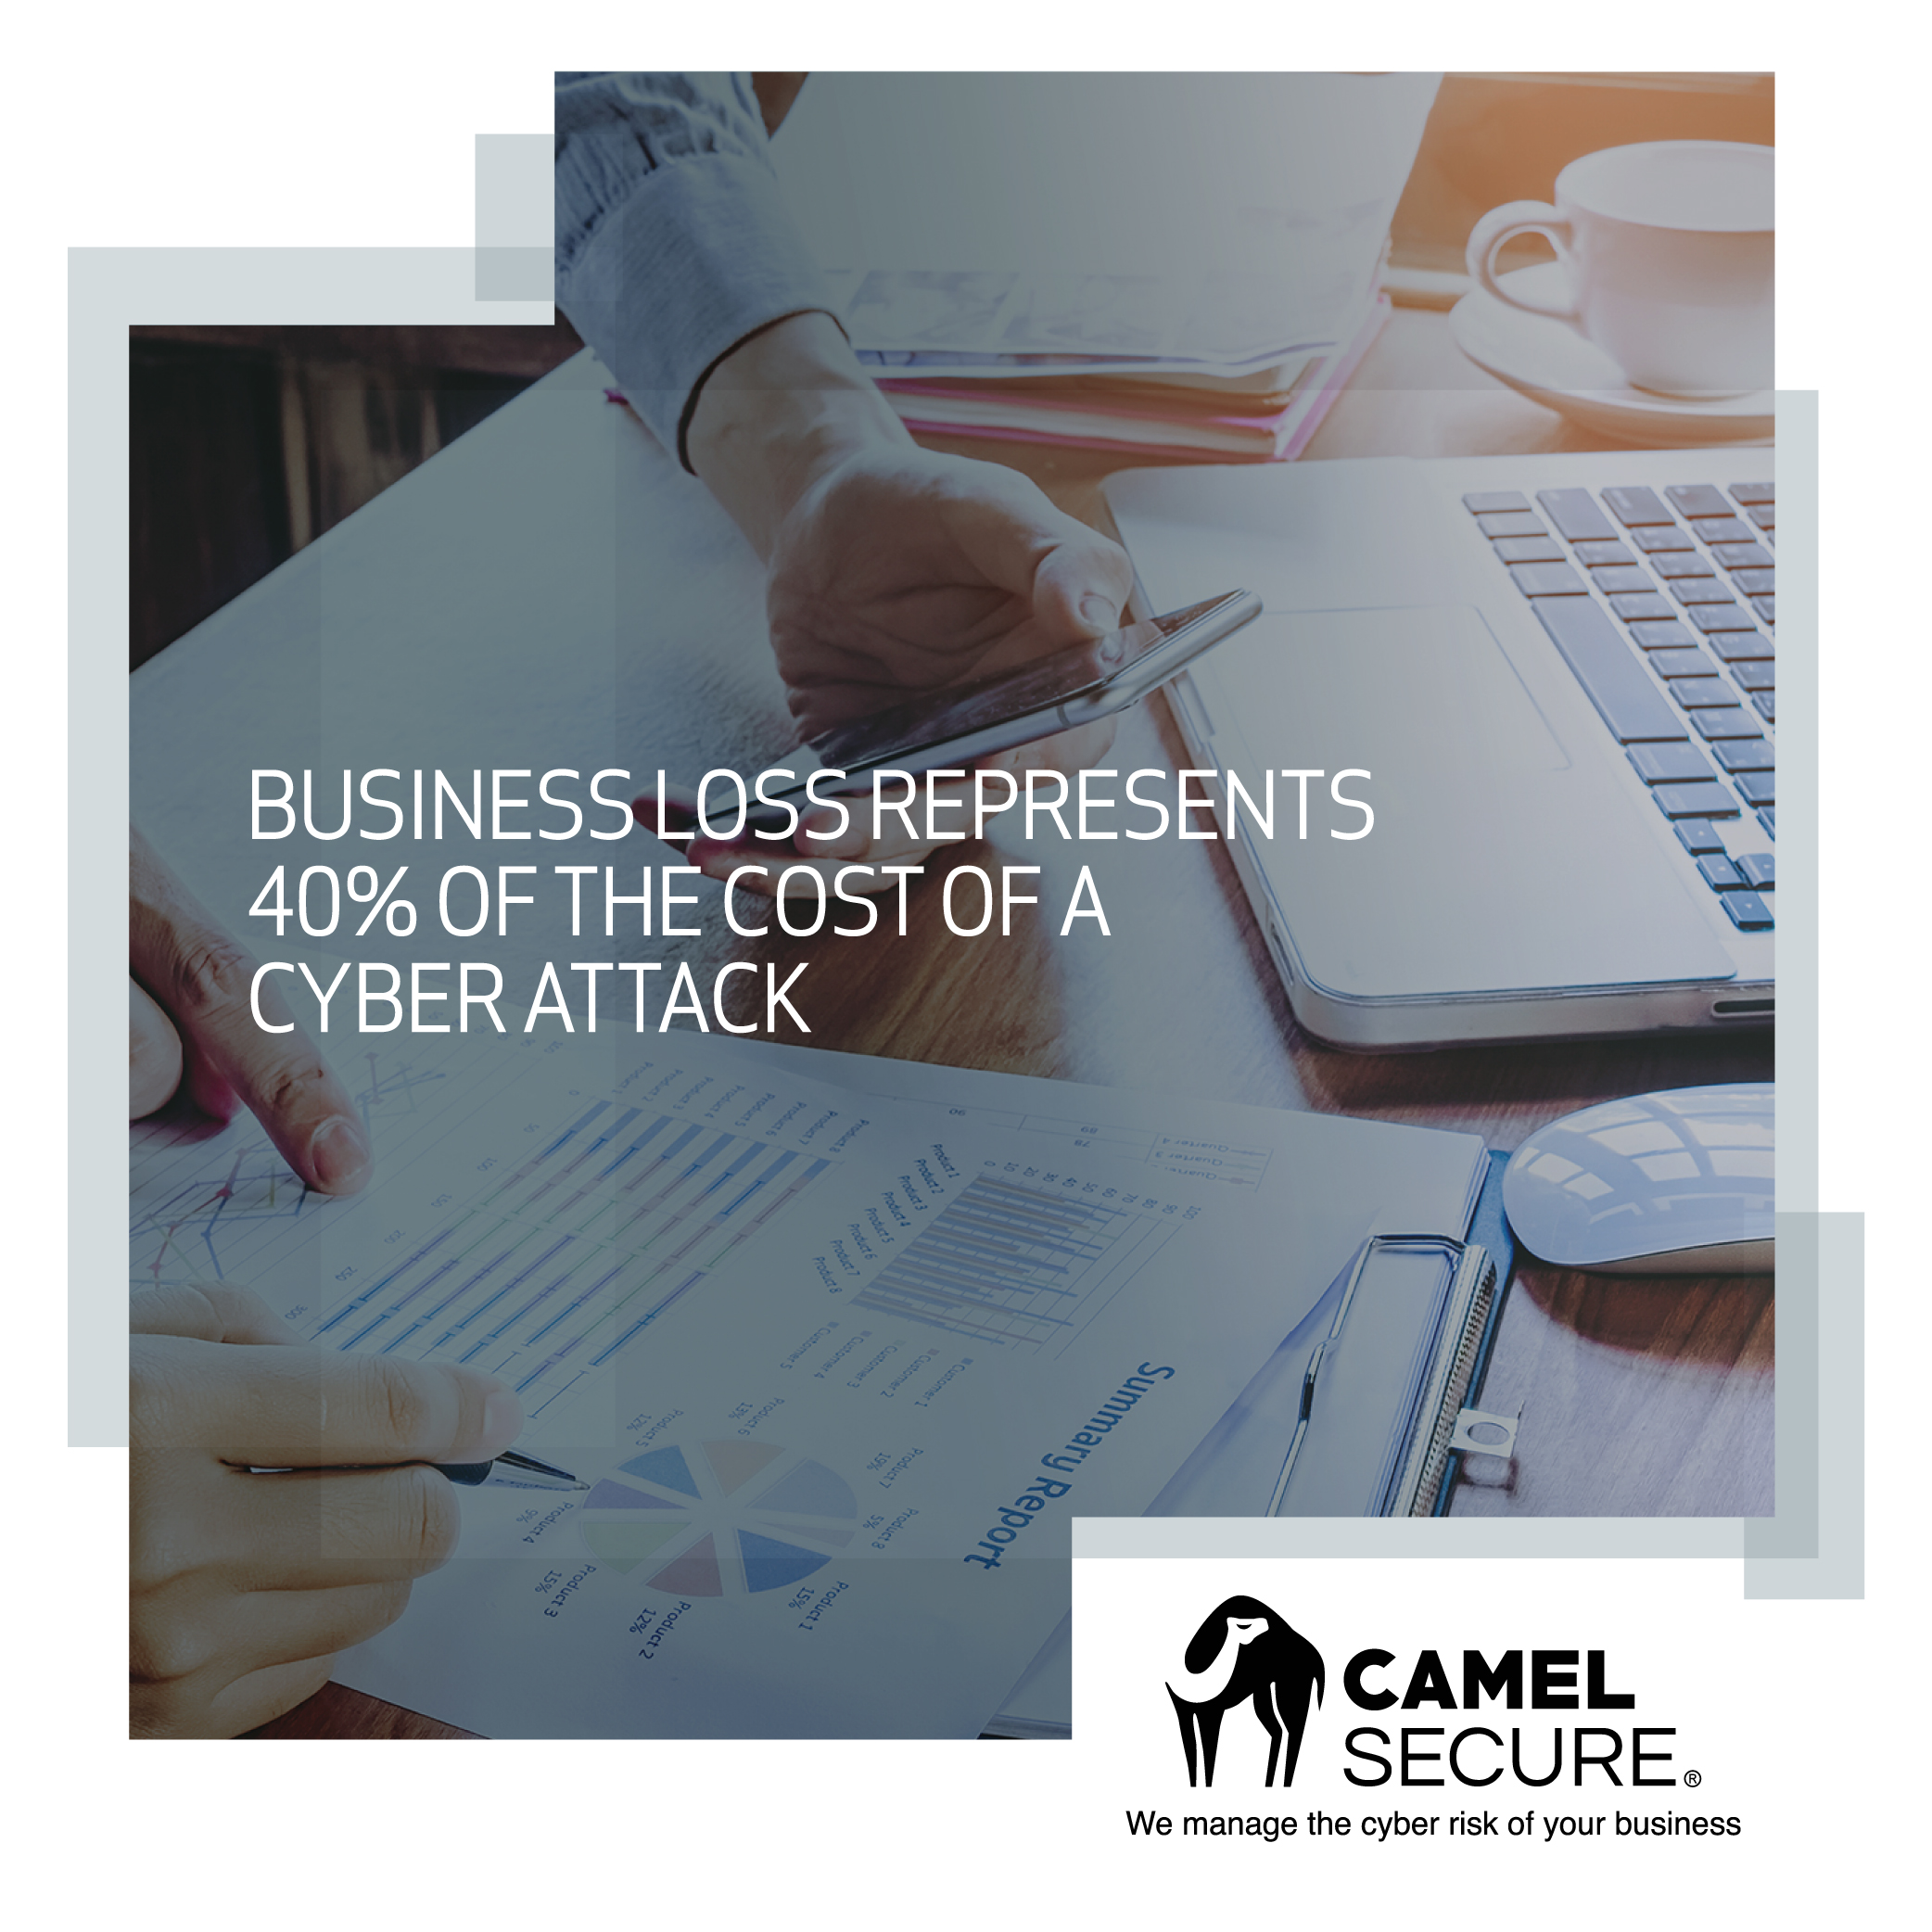 Business loss represents 40% of the cost of a cyber attack